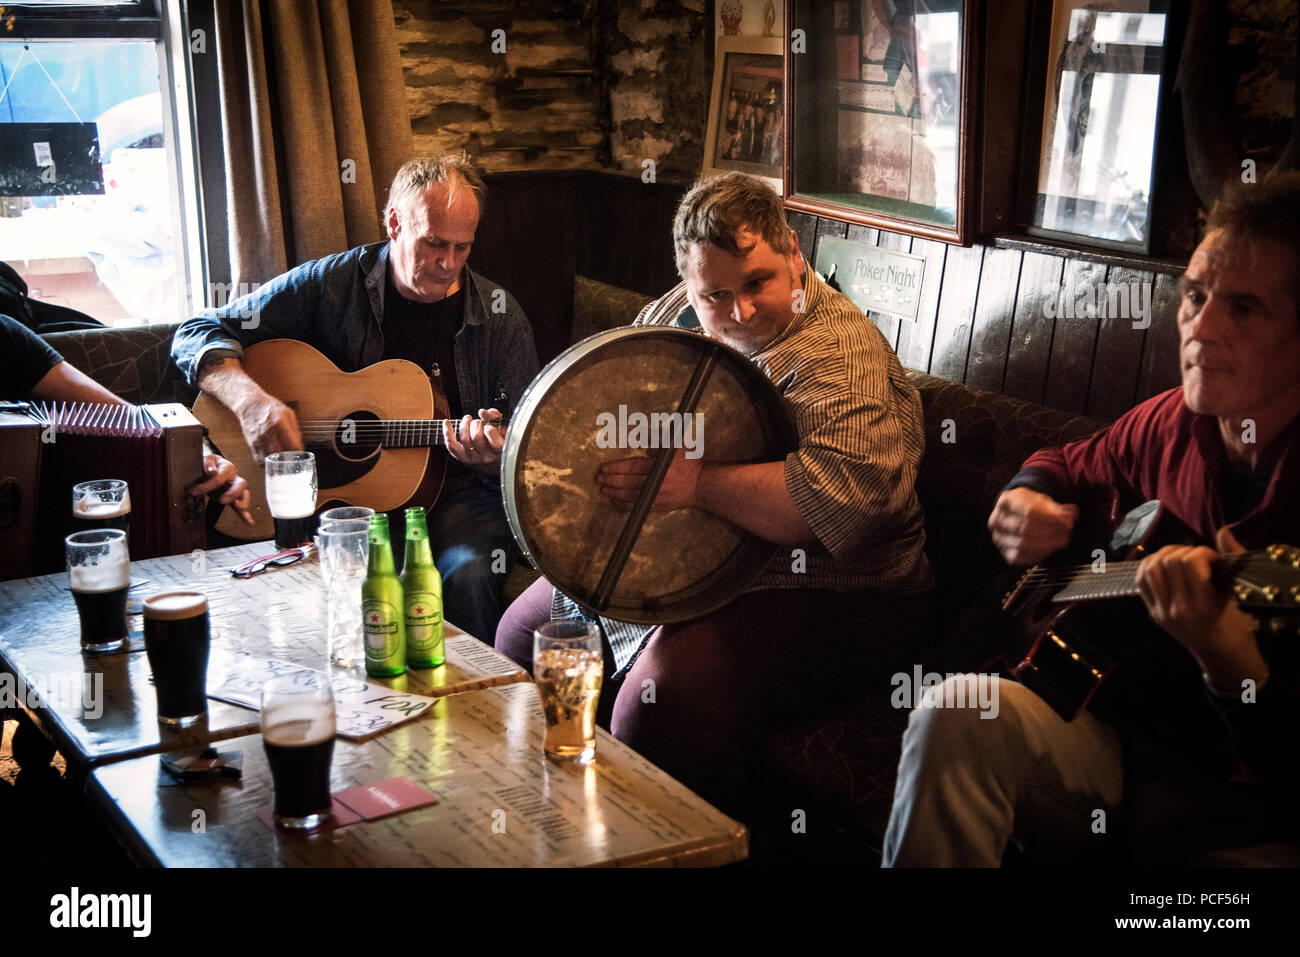 Music session at Patsy Dan's bar in Dunfanaghy - Stock Image